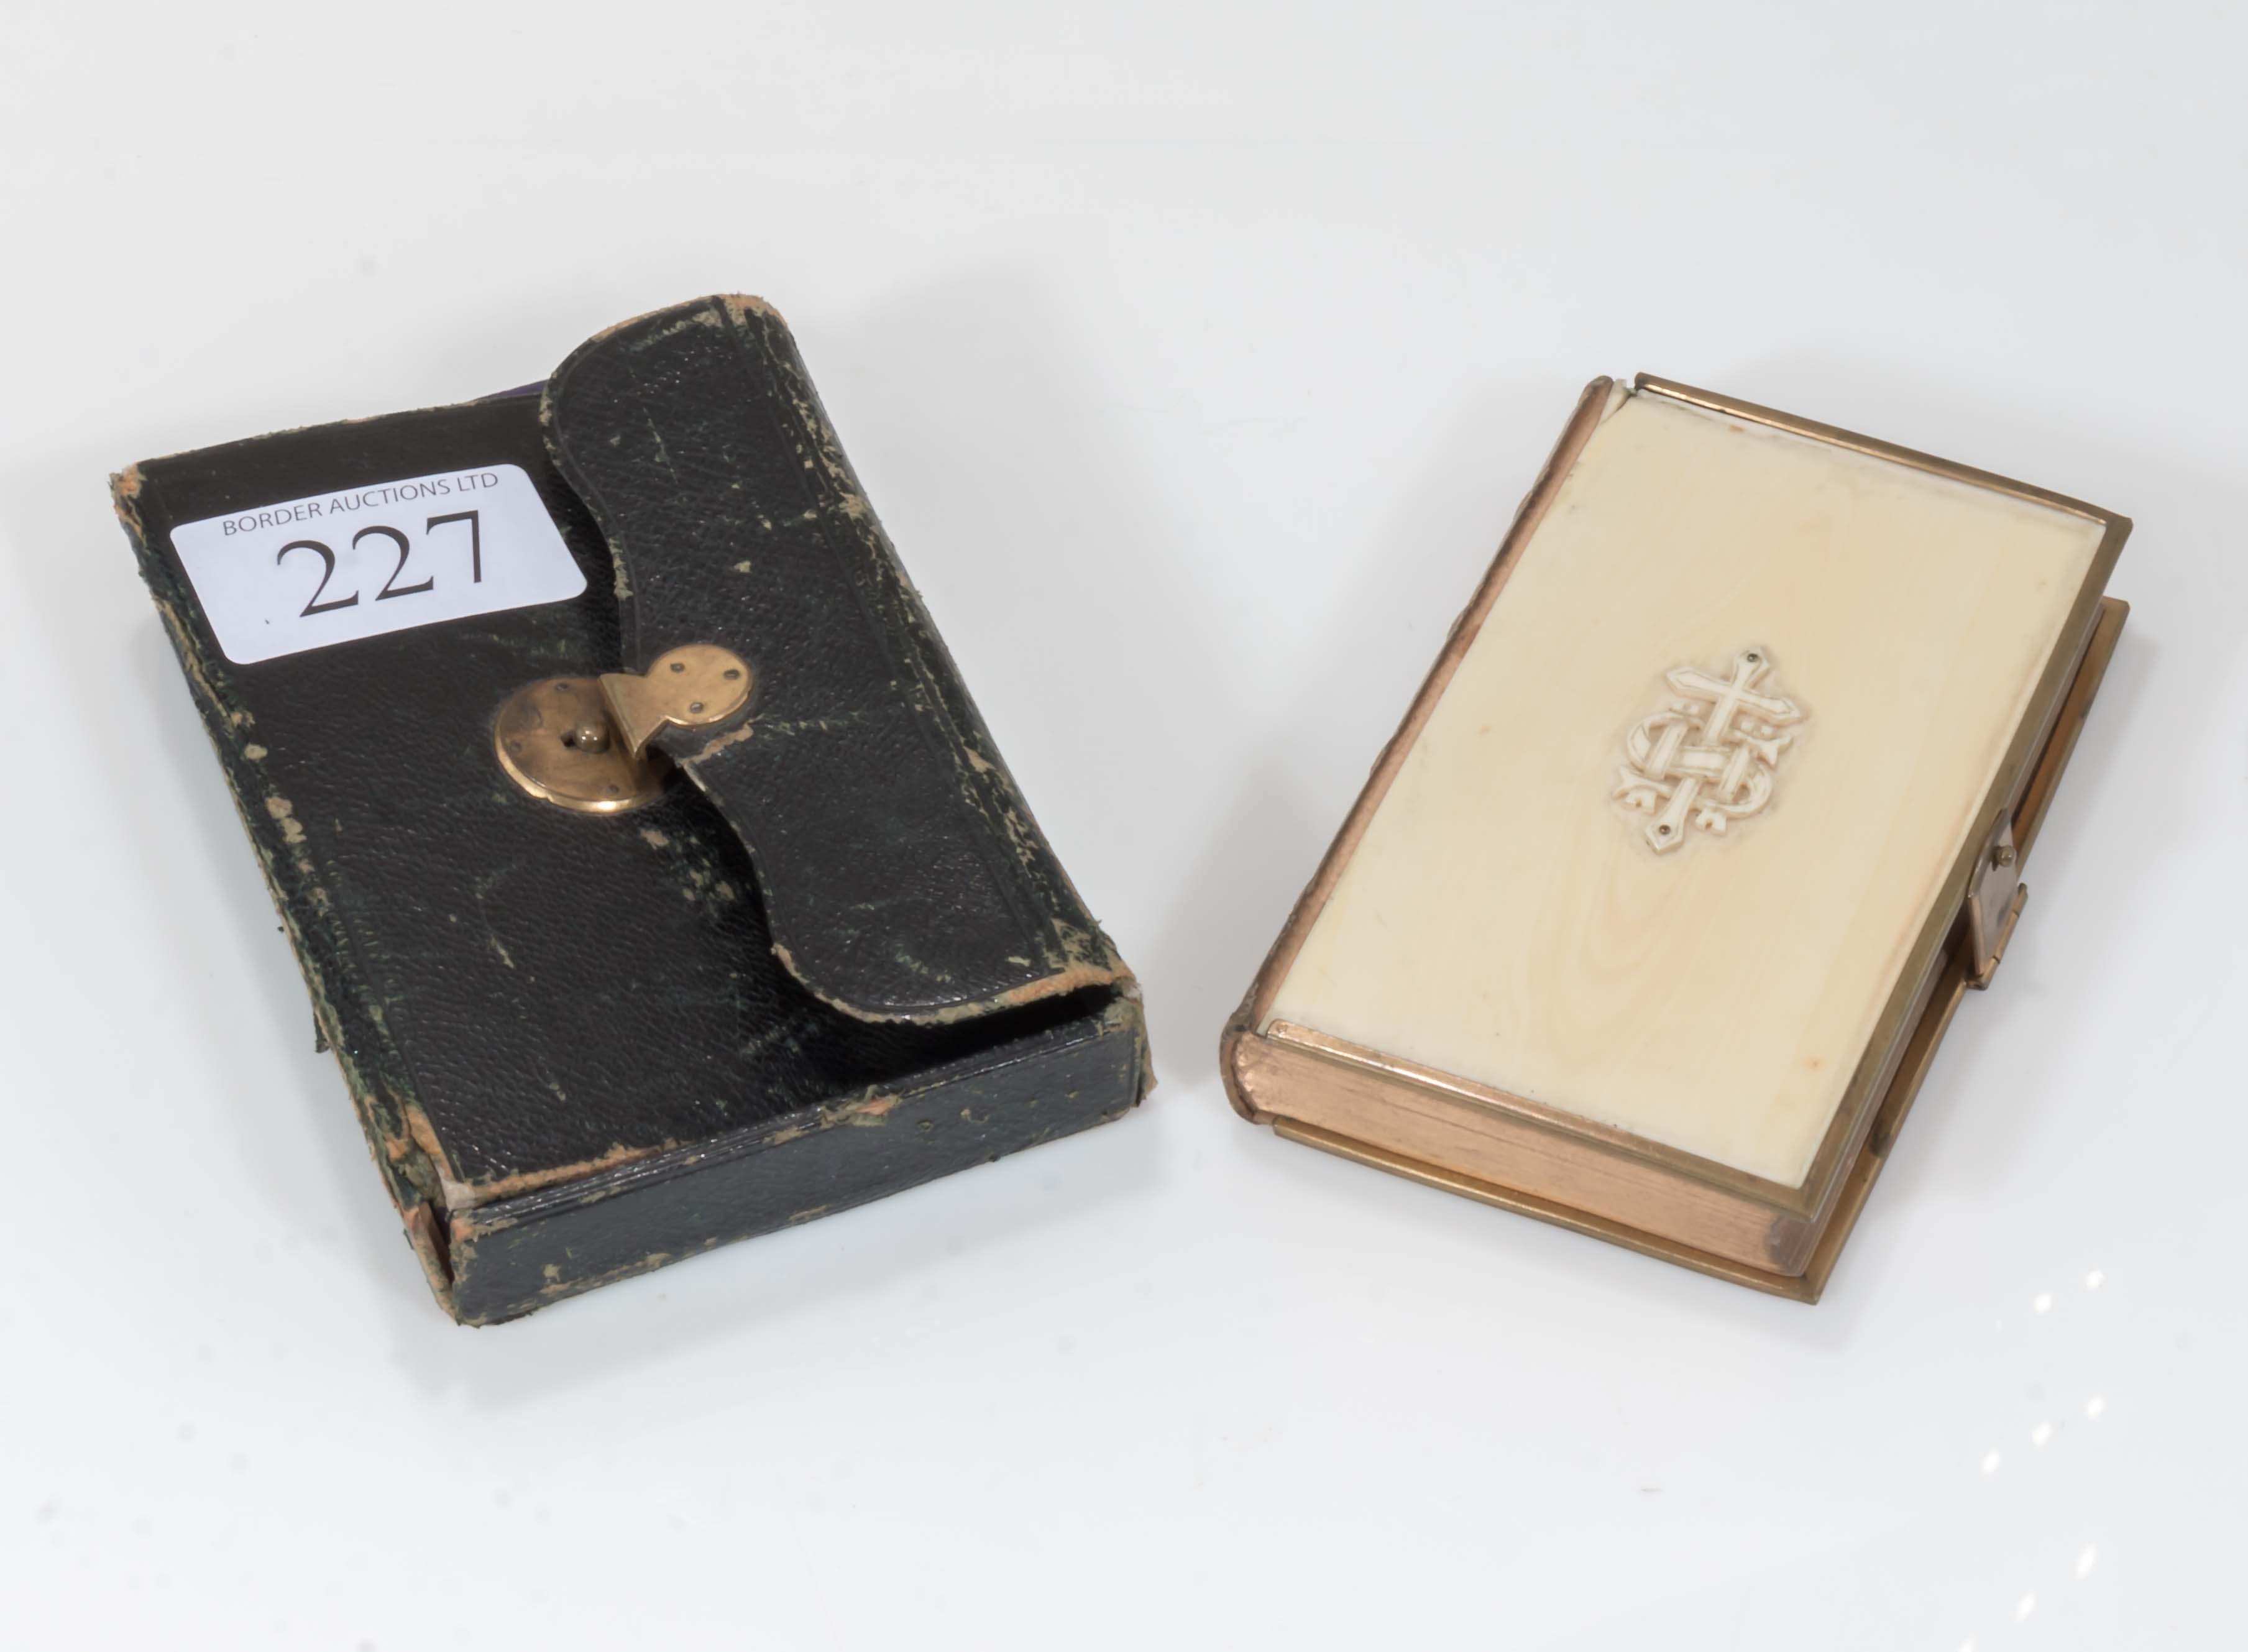 Lot 227 - An Ivory backed bible in leather case